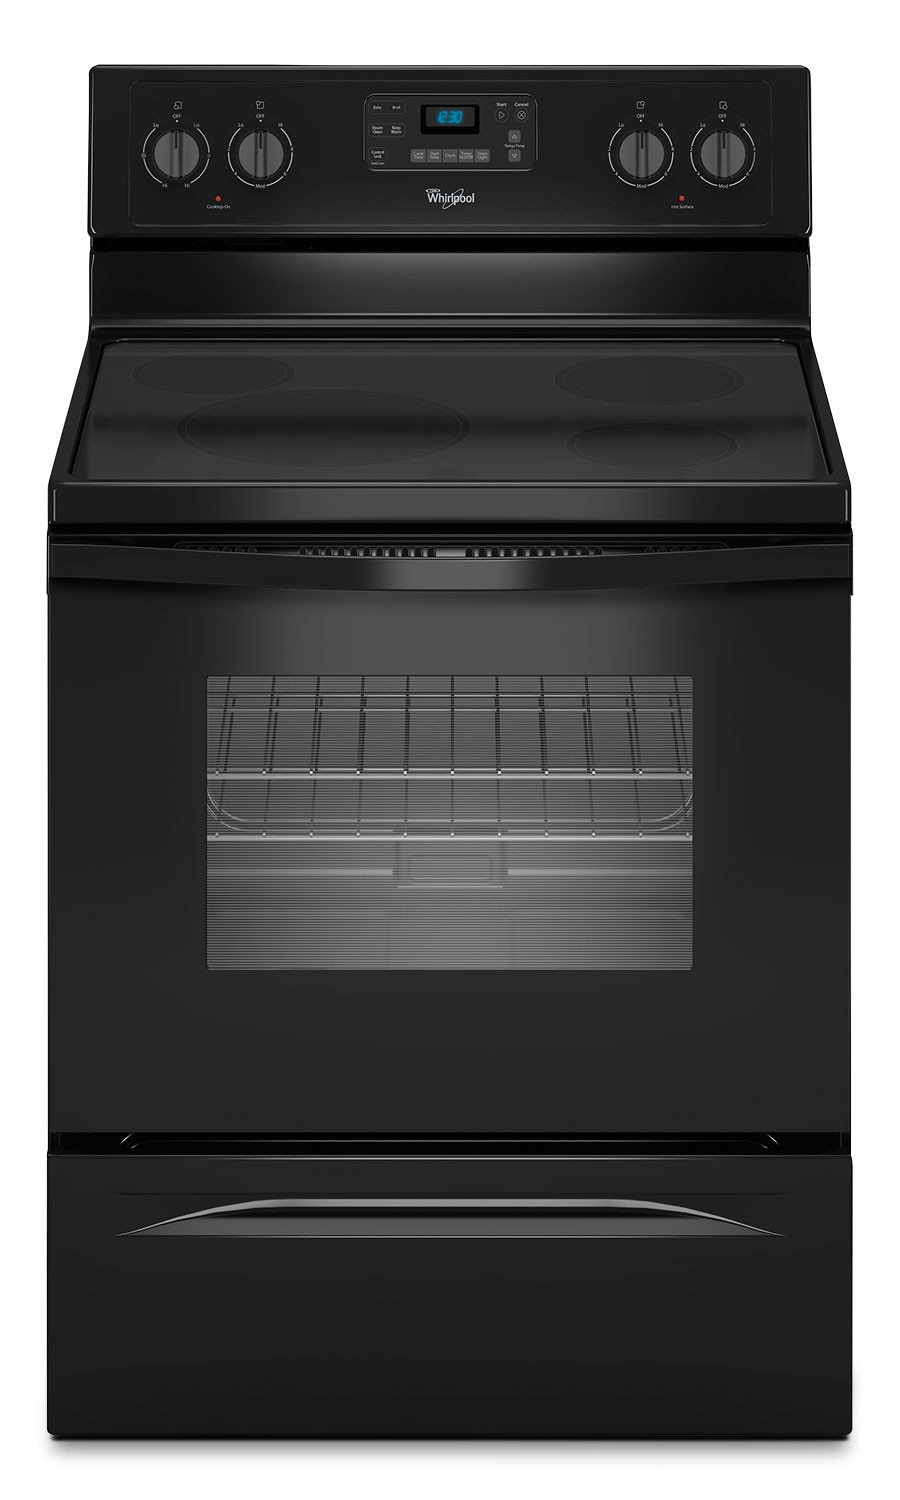 Whirlpool Black Freestanding Electric Range with FlexHeat™ Element (4.8 Cu. Ft.) - YWFE330W0EB